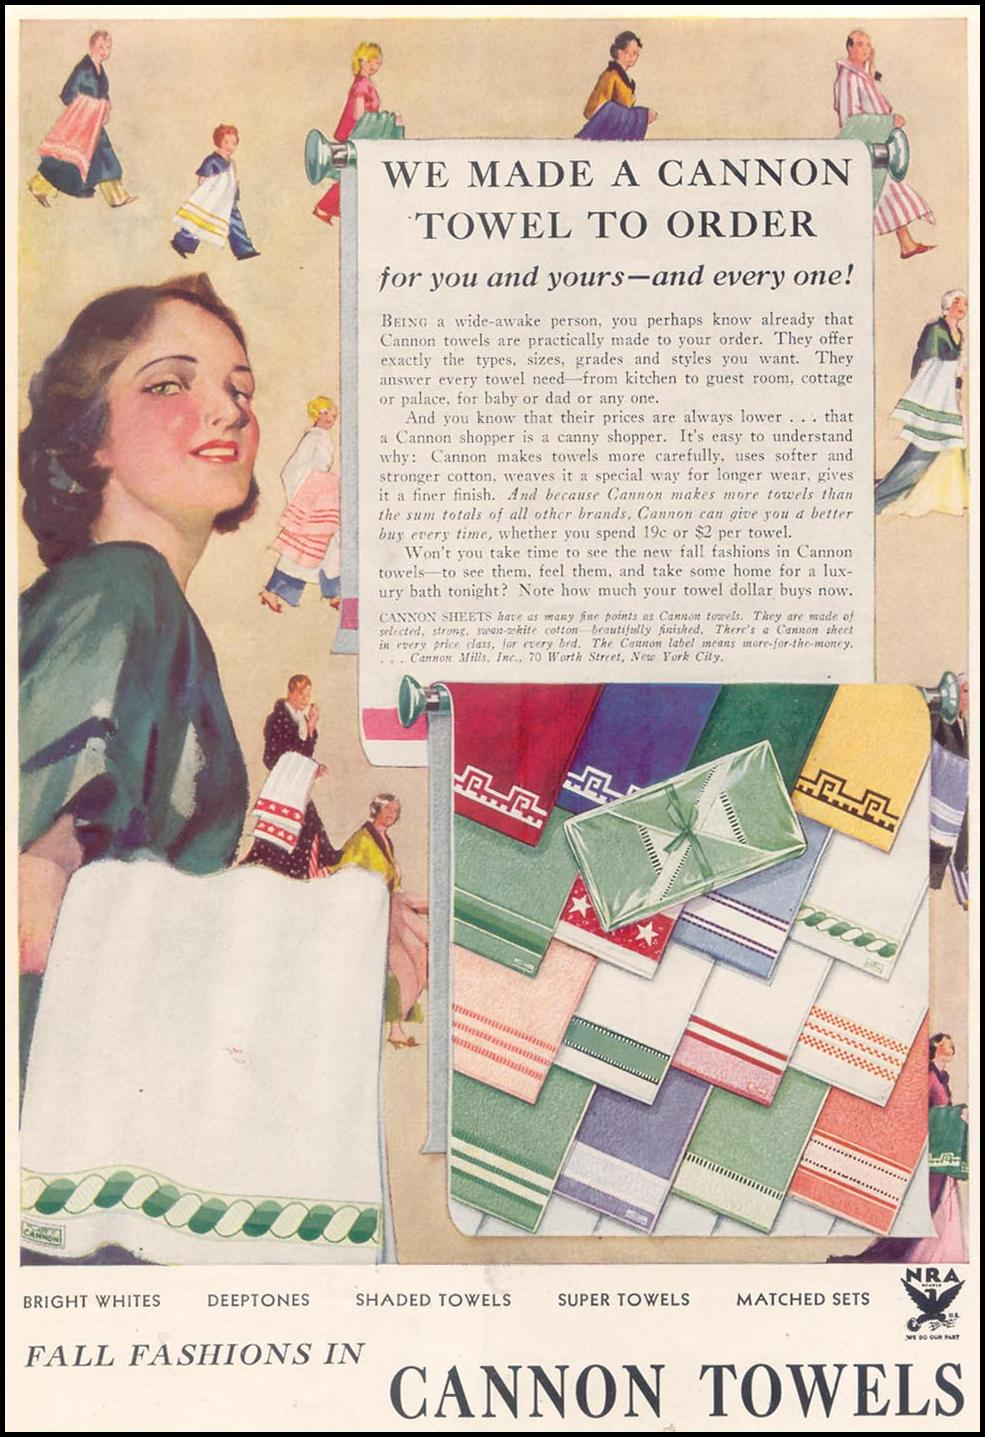 CANNON TOWELS GOOD HOUSEKEEPING 11/01/1933